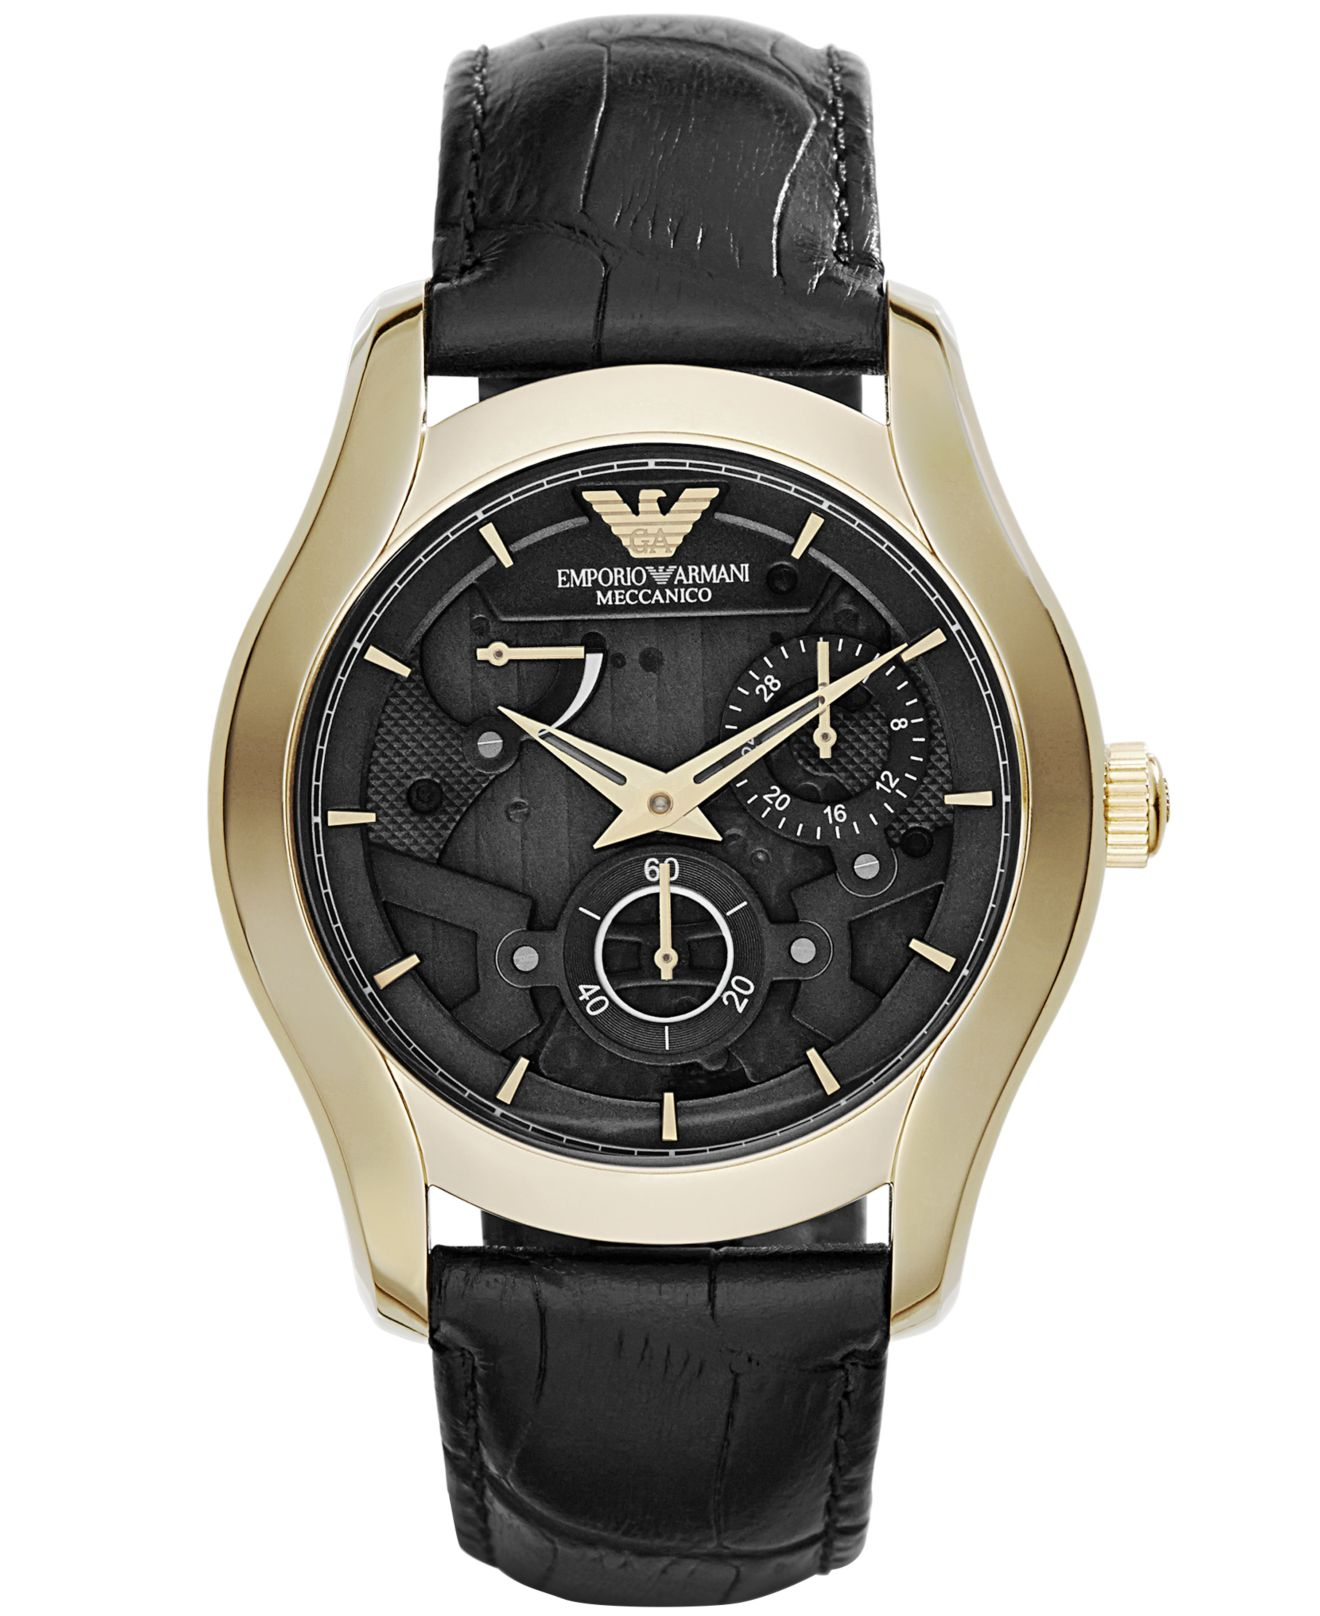 Best leather strap watches men images best ideas about watches for - Best Ideas About Armani Watches On Pinterest Armani Watches Gallery Best Ideas About Armani Watches On Pinterest Armani Watches Gallery